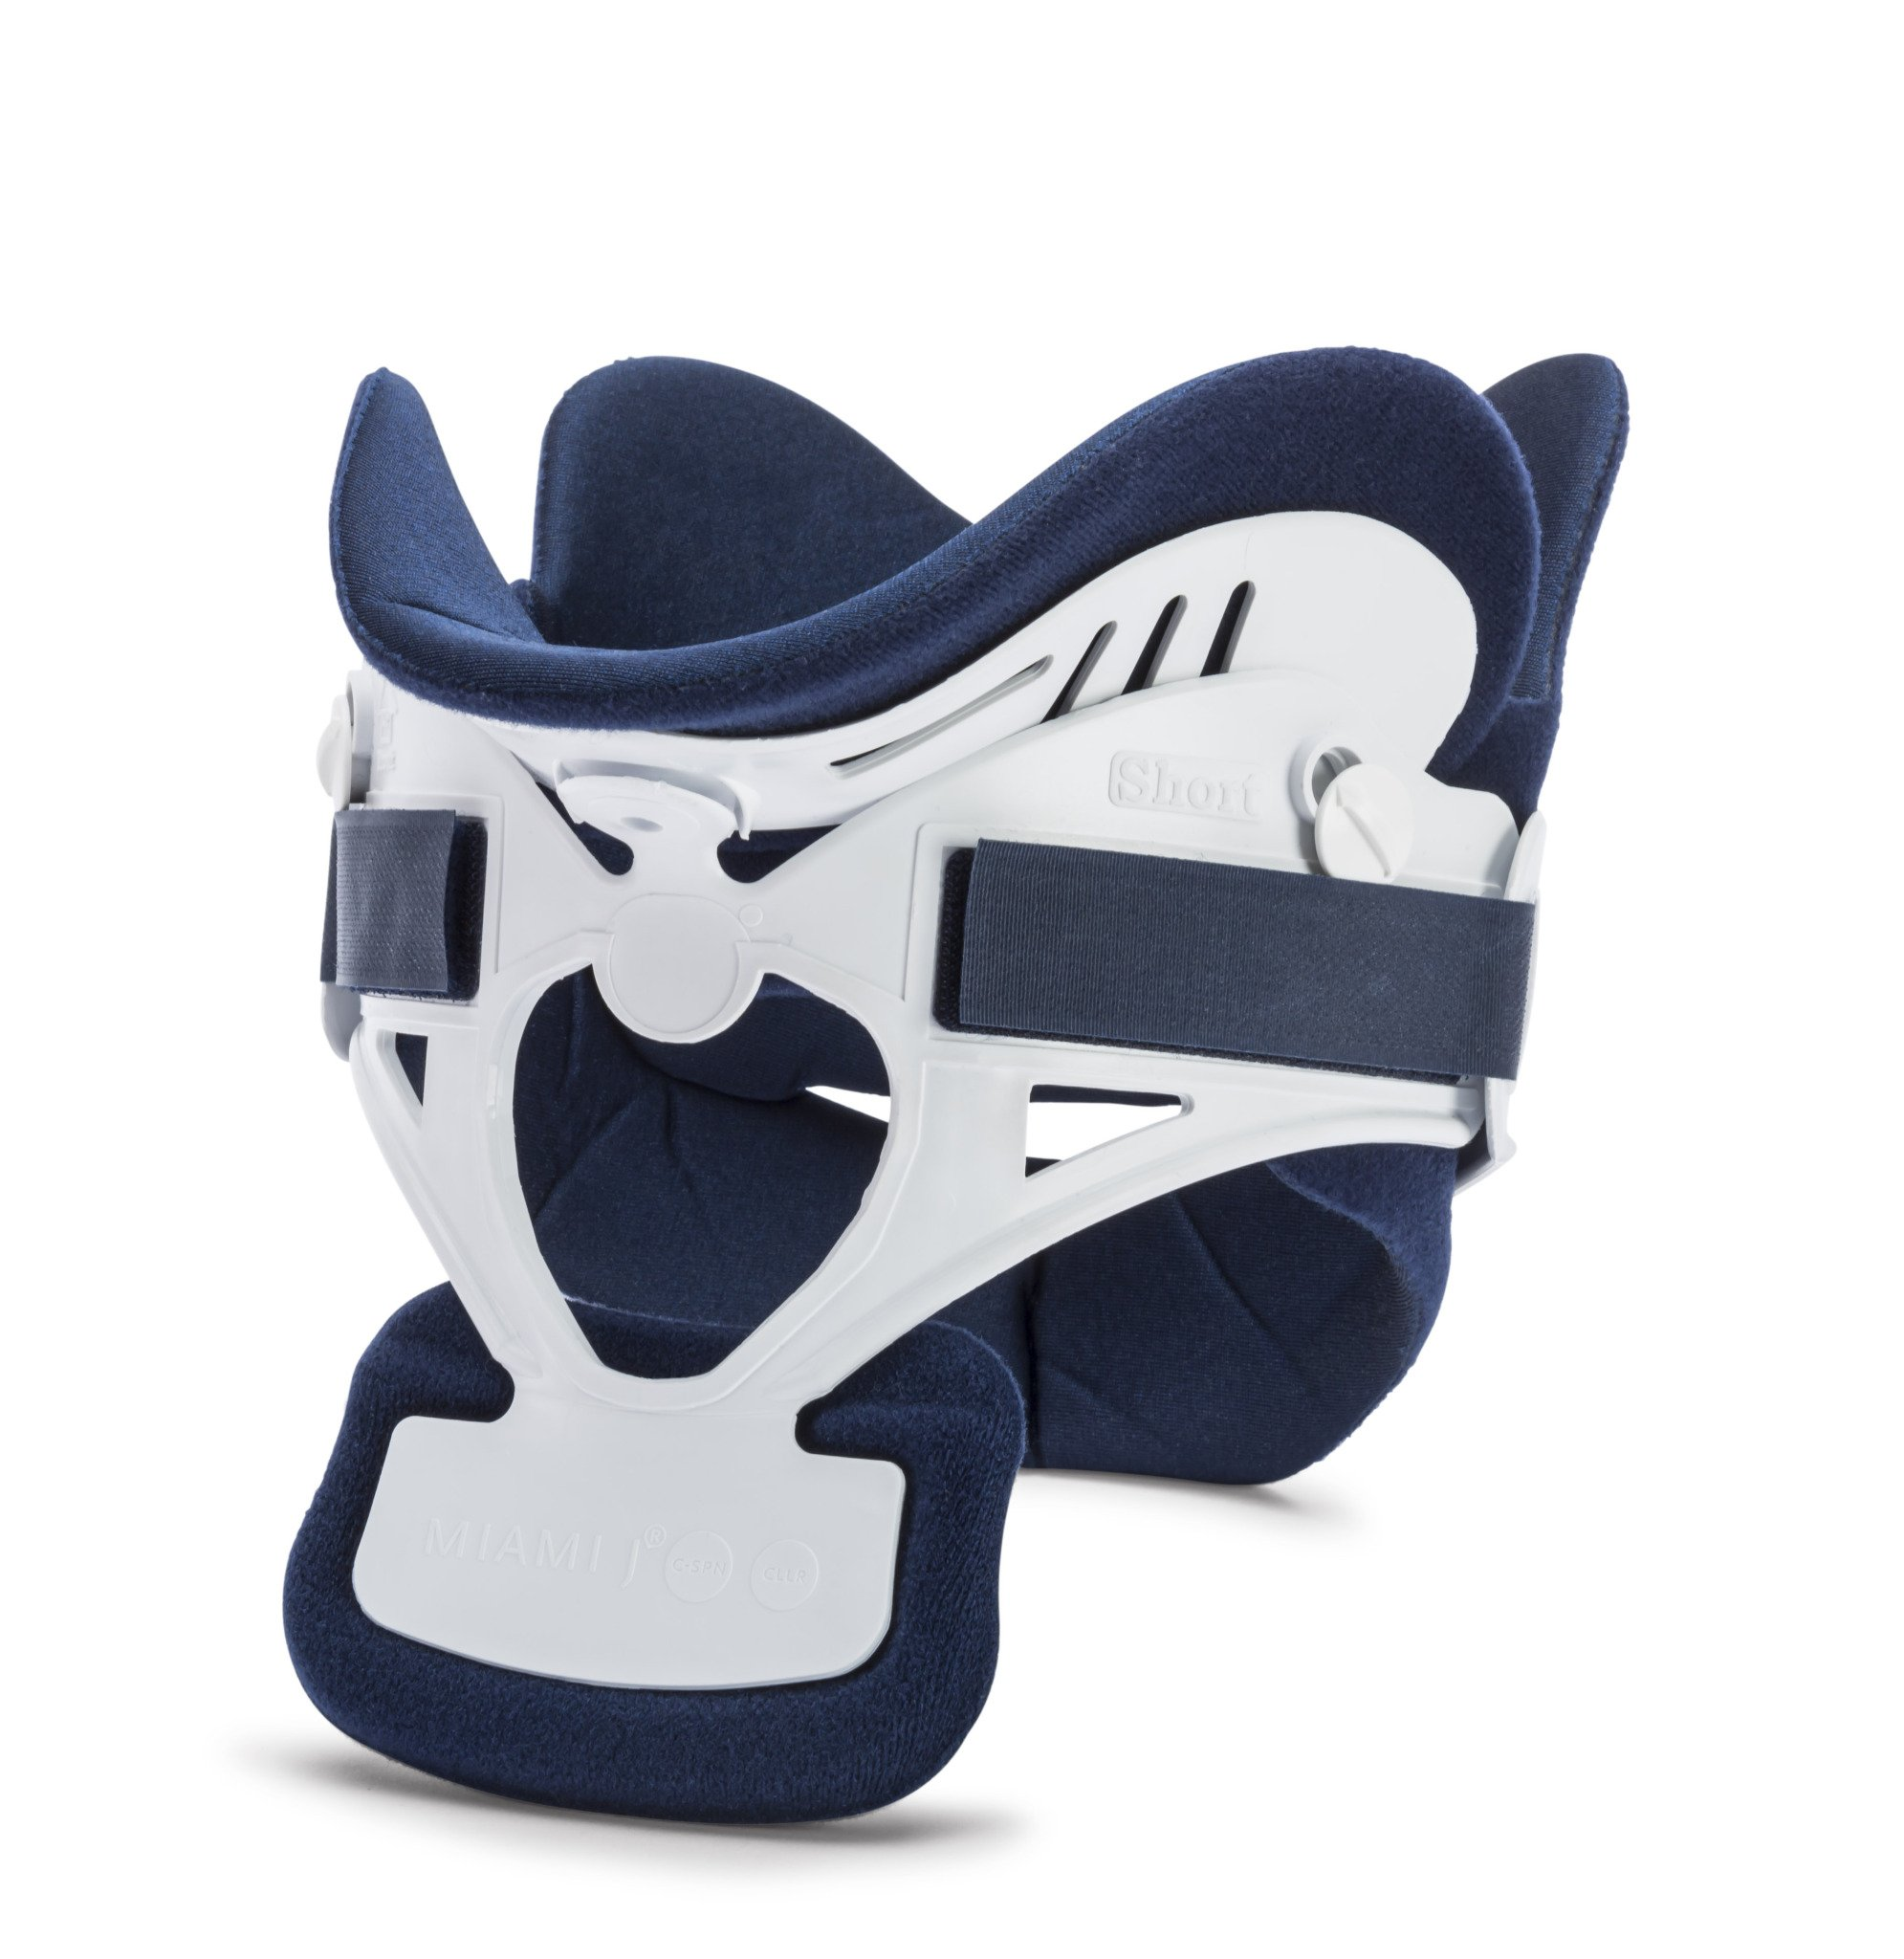 Ossur Miami J Cervical Neck Collar - C-Spine Vertebrae Immobilizer Semi-Rigid Antibacterial Pads for Patient Comfort - Relieves Pain & Pressure in Spine - MJ-250 X-Small by Ossur (Image #1)